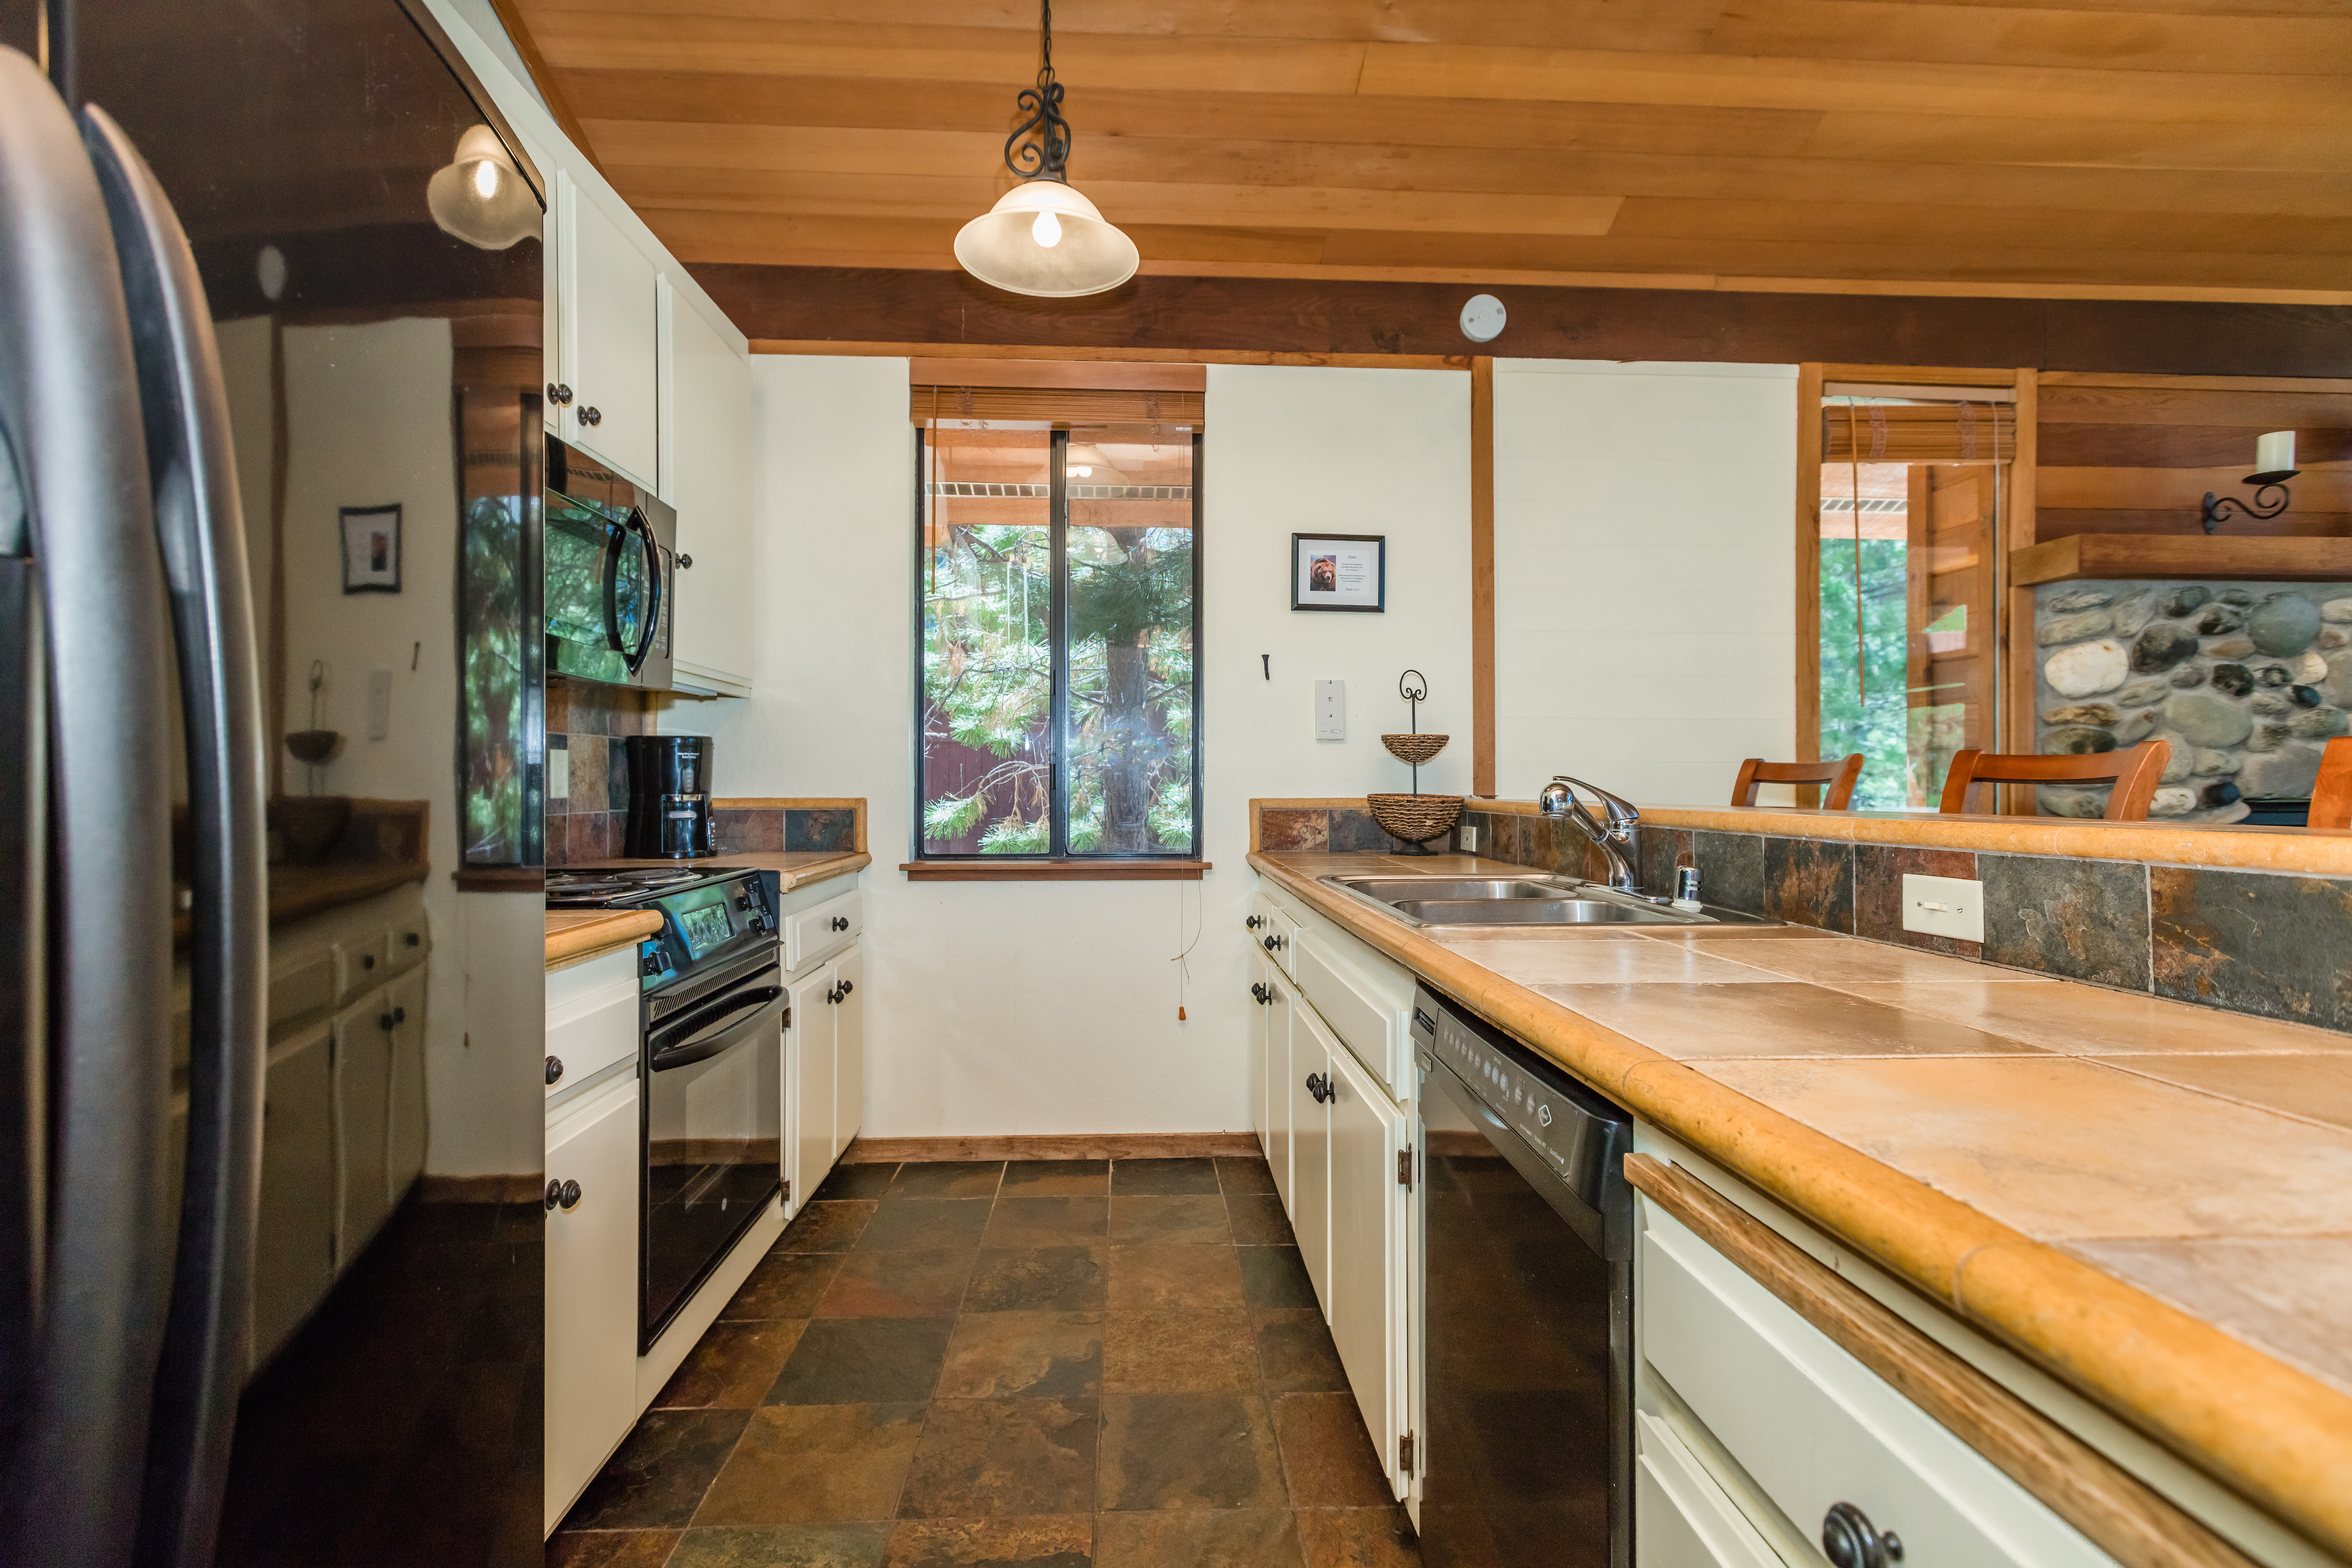 Galley kitchen-compact, yet efficient and open for entertaining